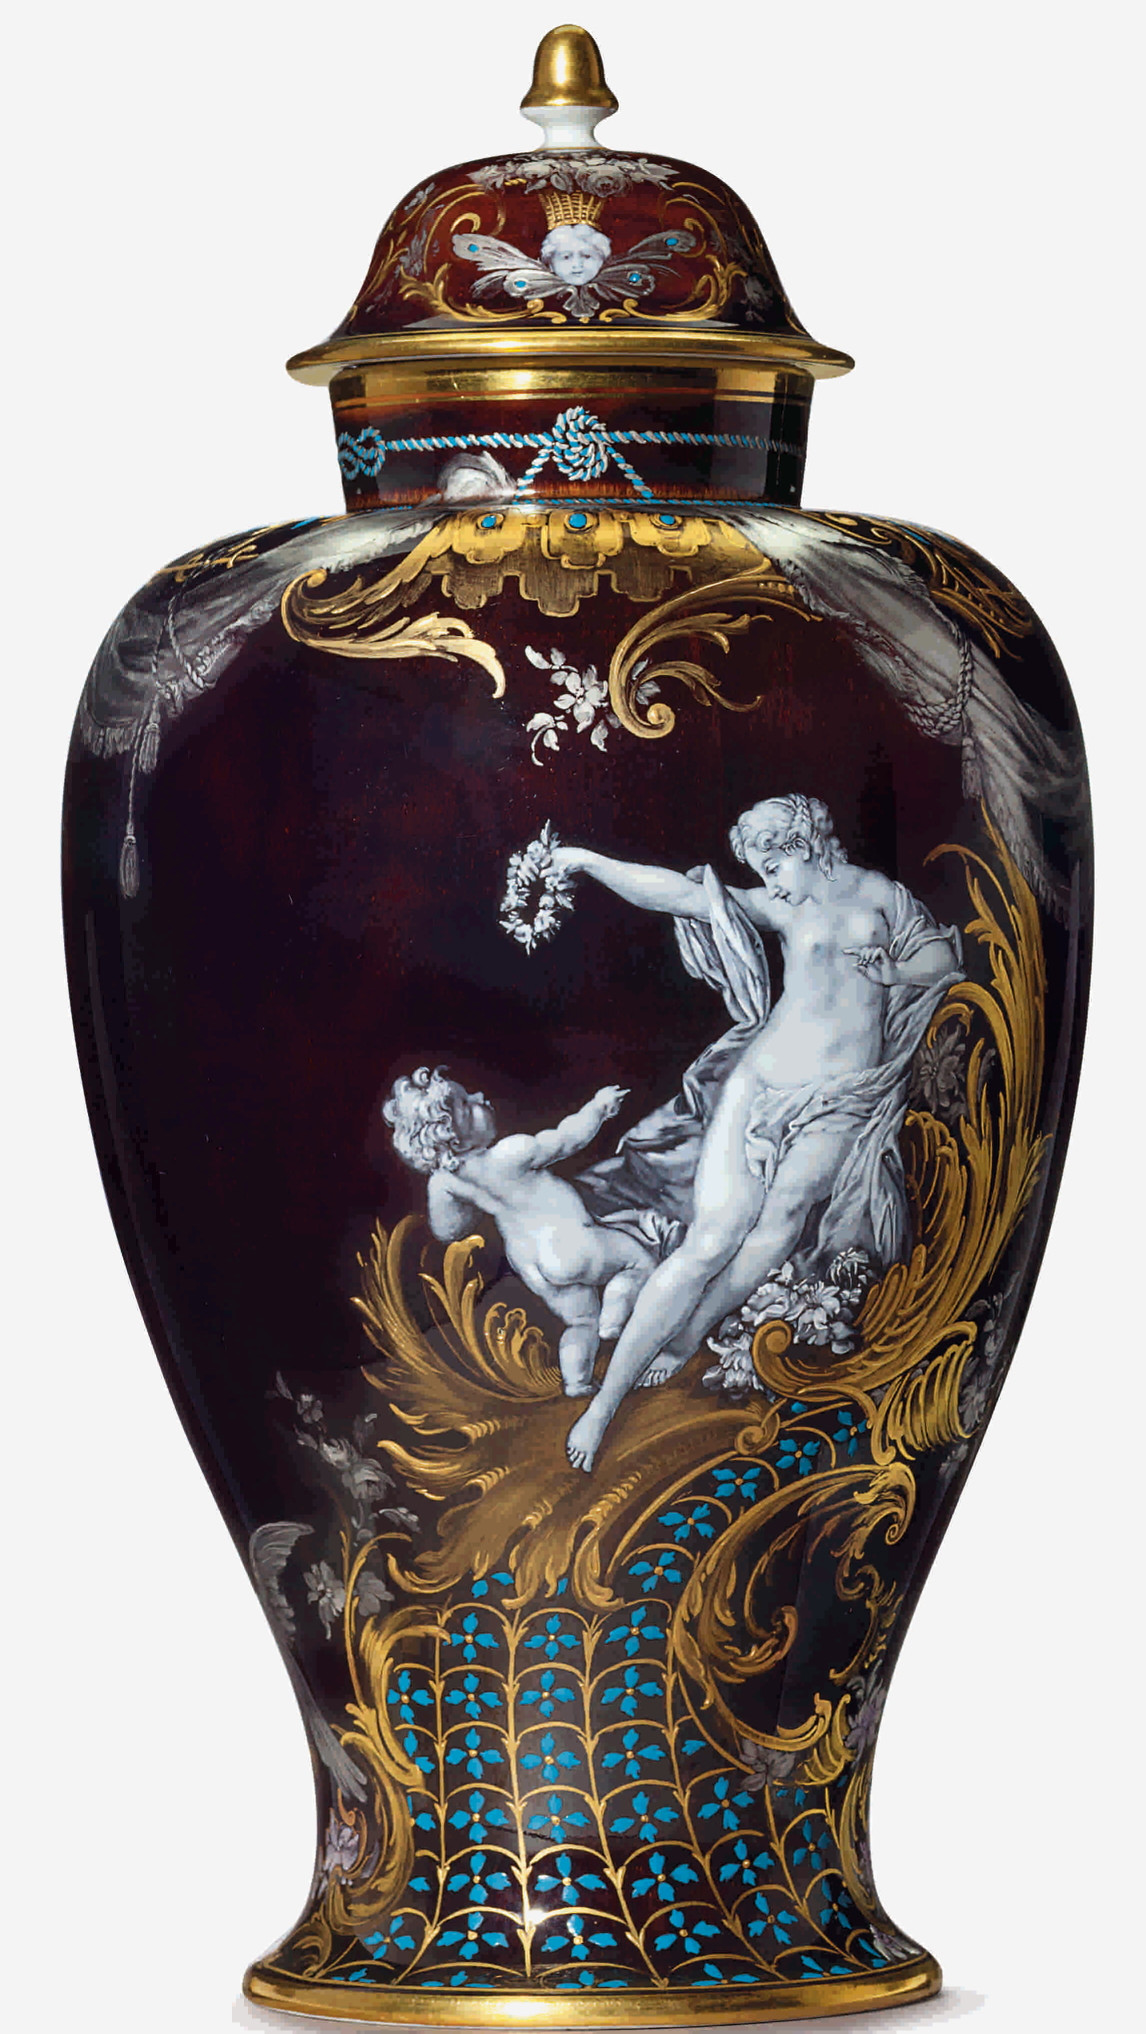 limoges vase prices of meissen vases free online appraisal price guide meissen vases regarding find out your items current market value sell it all for free please contact us for a free no obligation online appraisal